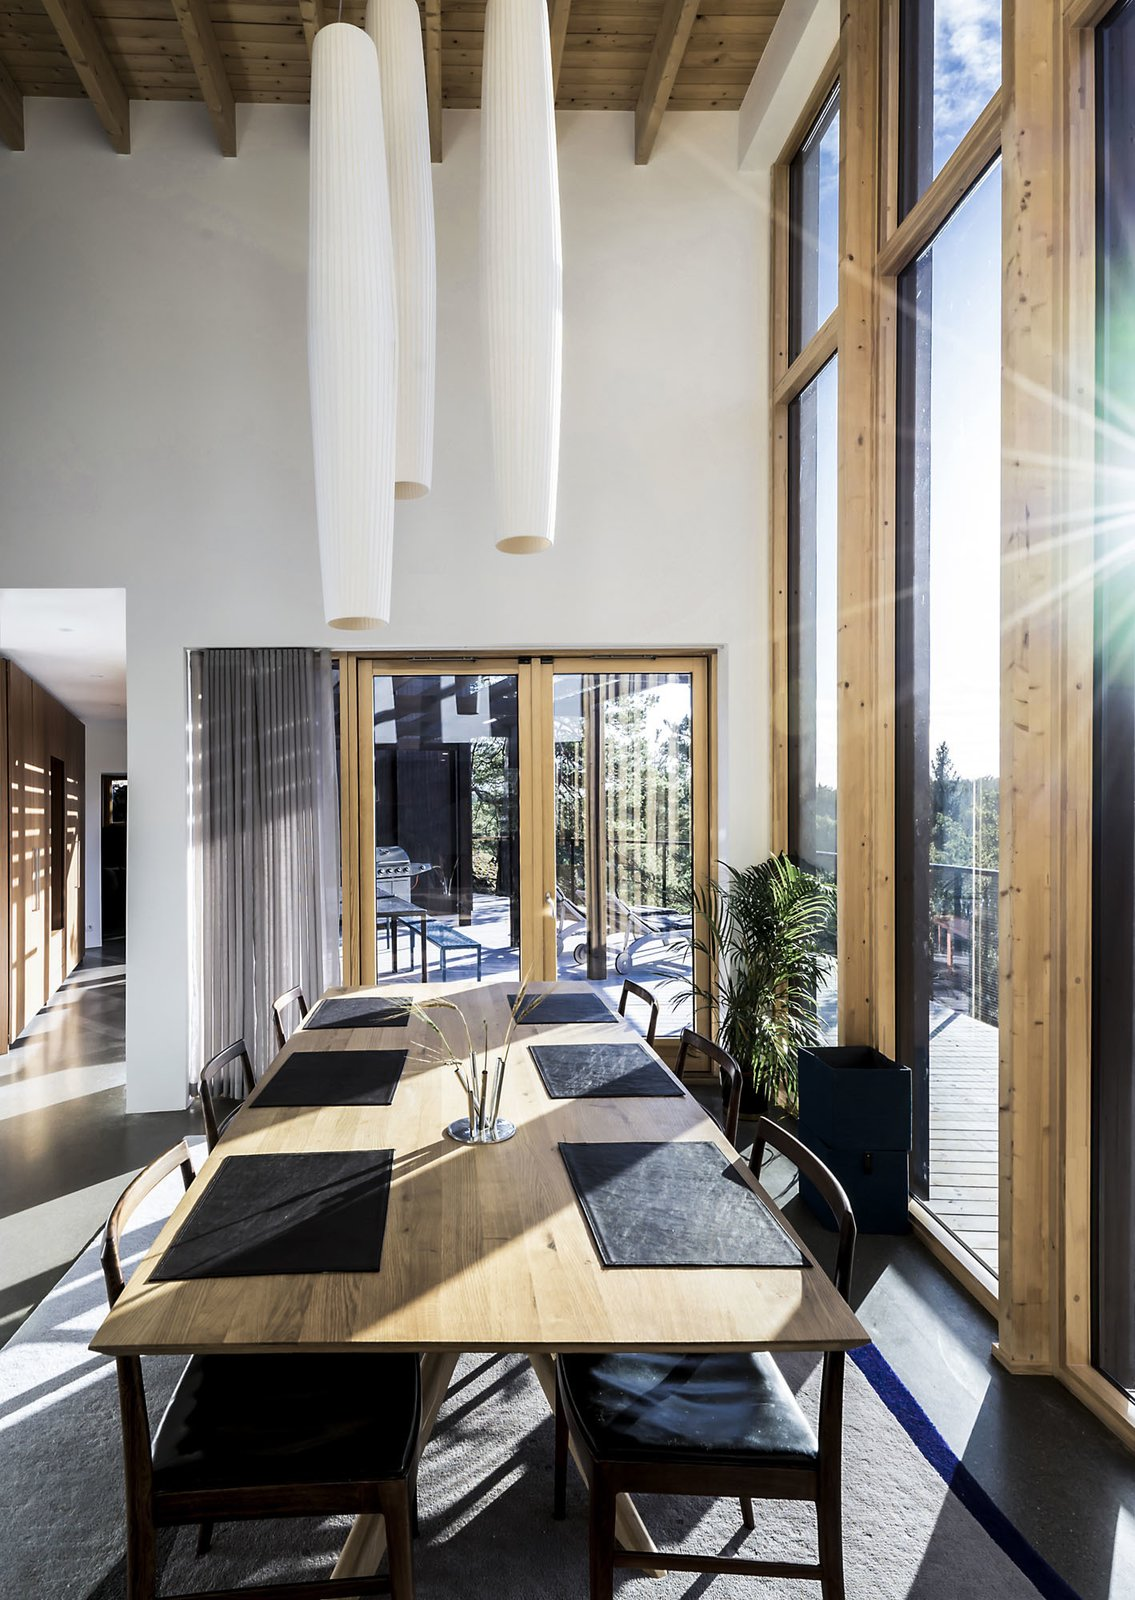 Dining Room, Ceiling Lighting, Table, Concrete Floor, Stools, and Pendant Lighting Dining area flooded with light  Woodland house